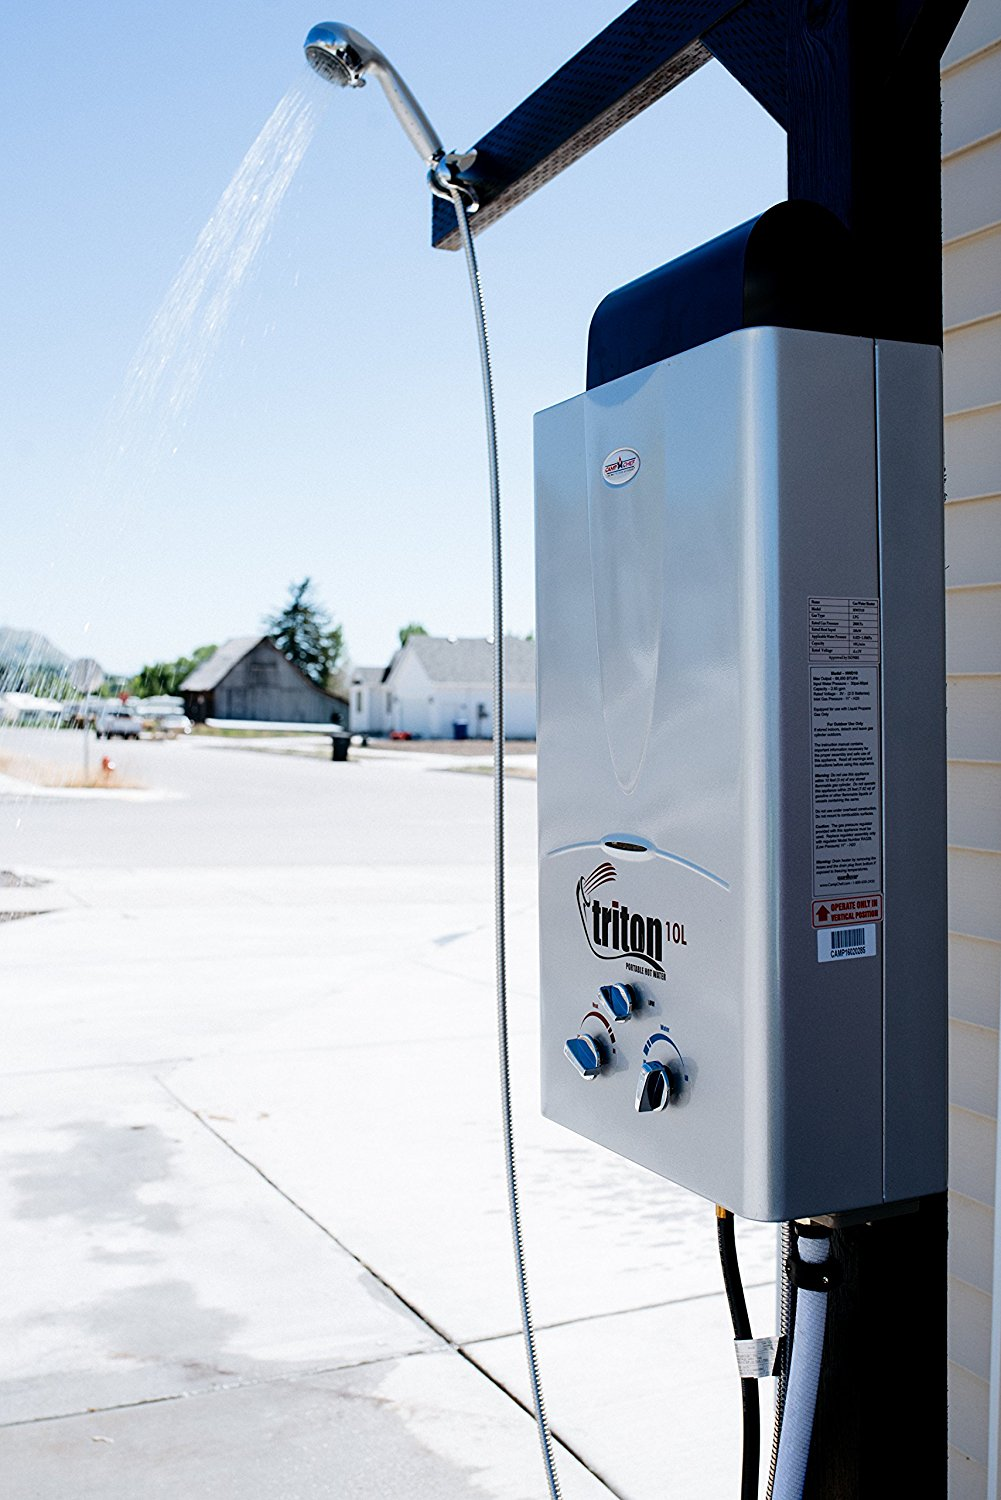 Camp Chef Triton 10l Portable Water Heater Product Review